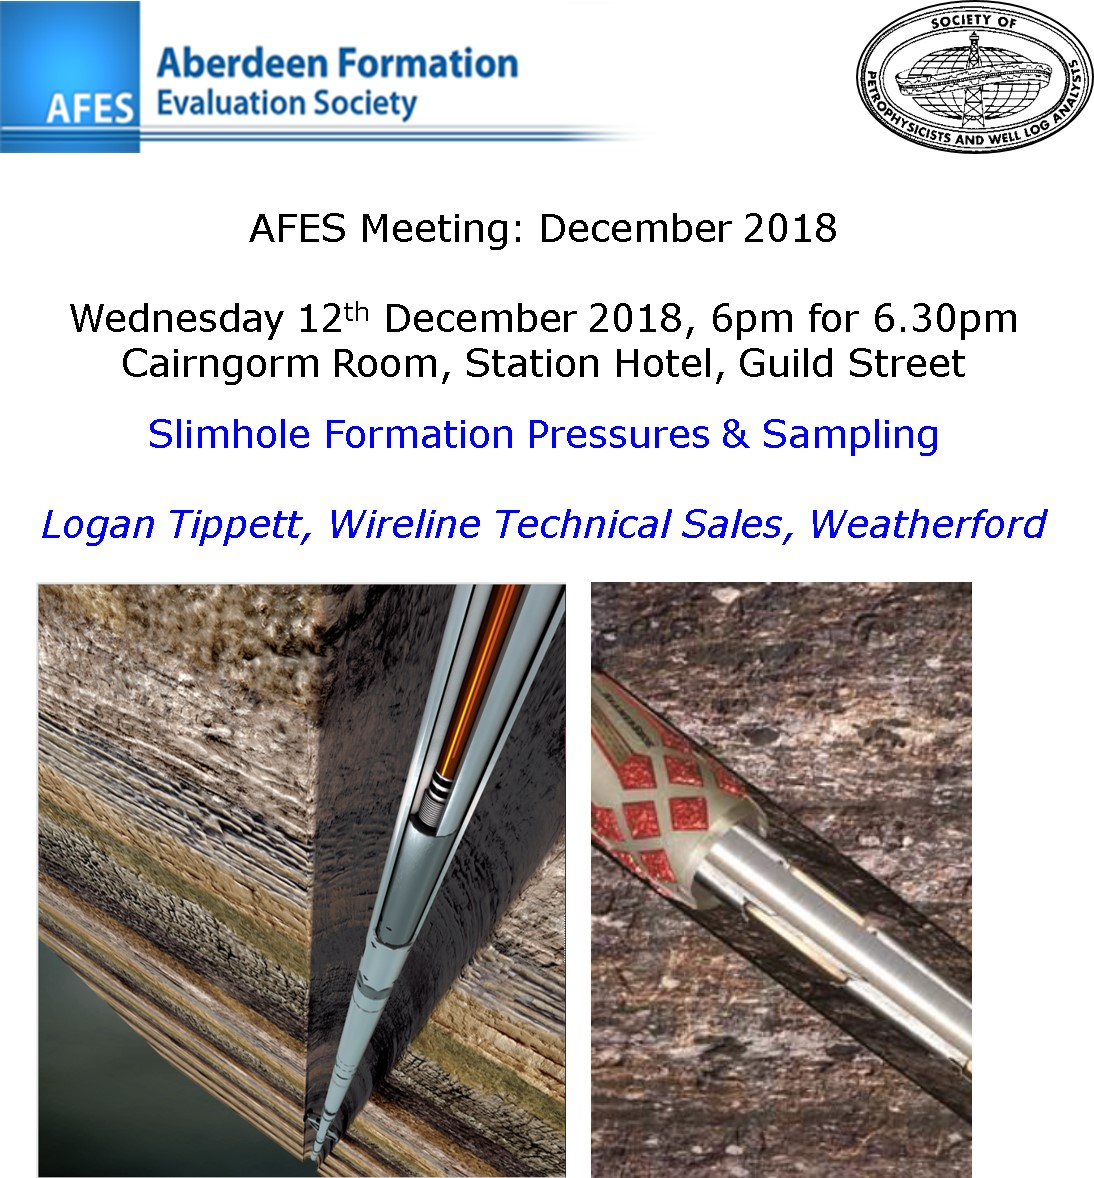 AFES Meeting: 12th December, 2018